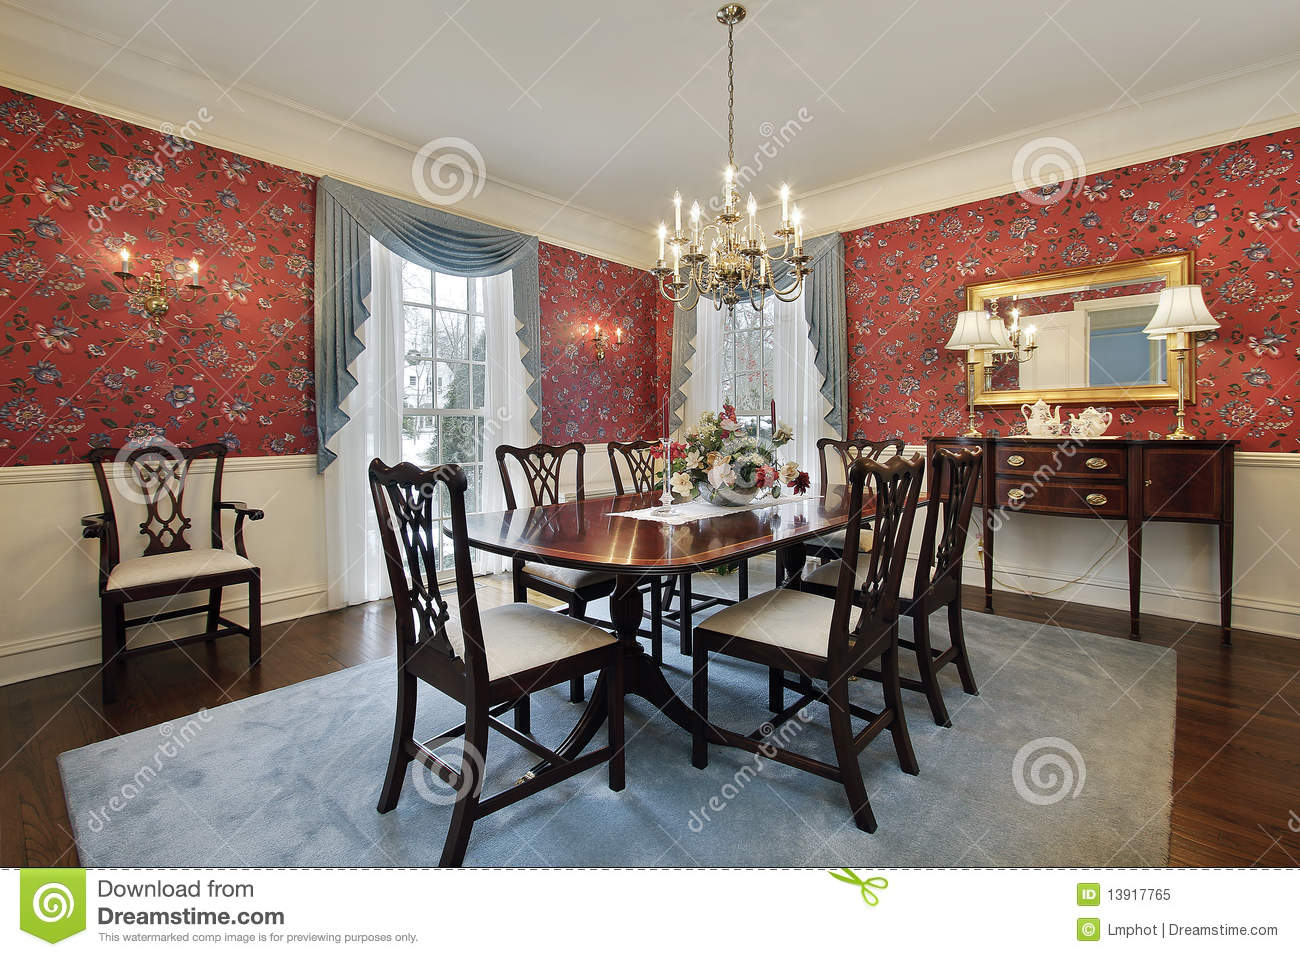 Dining room with red floral wallpaper royalty free stock for Red dining room